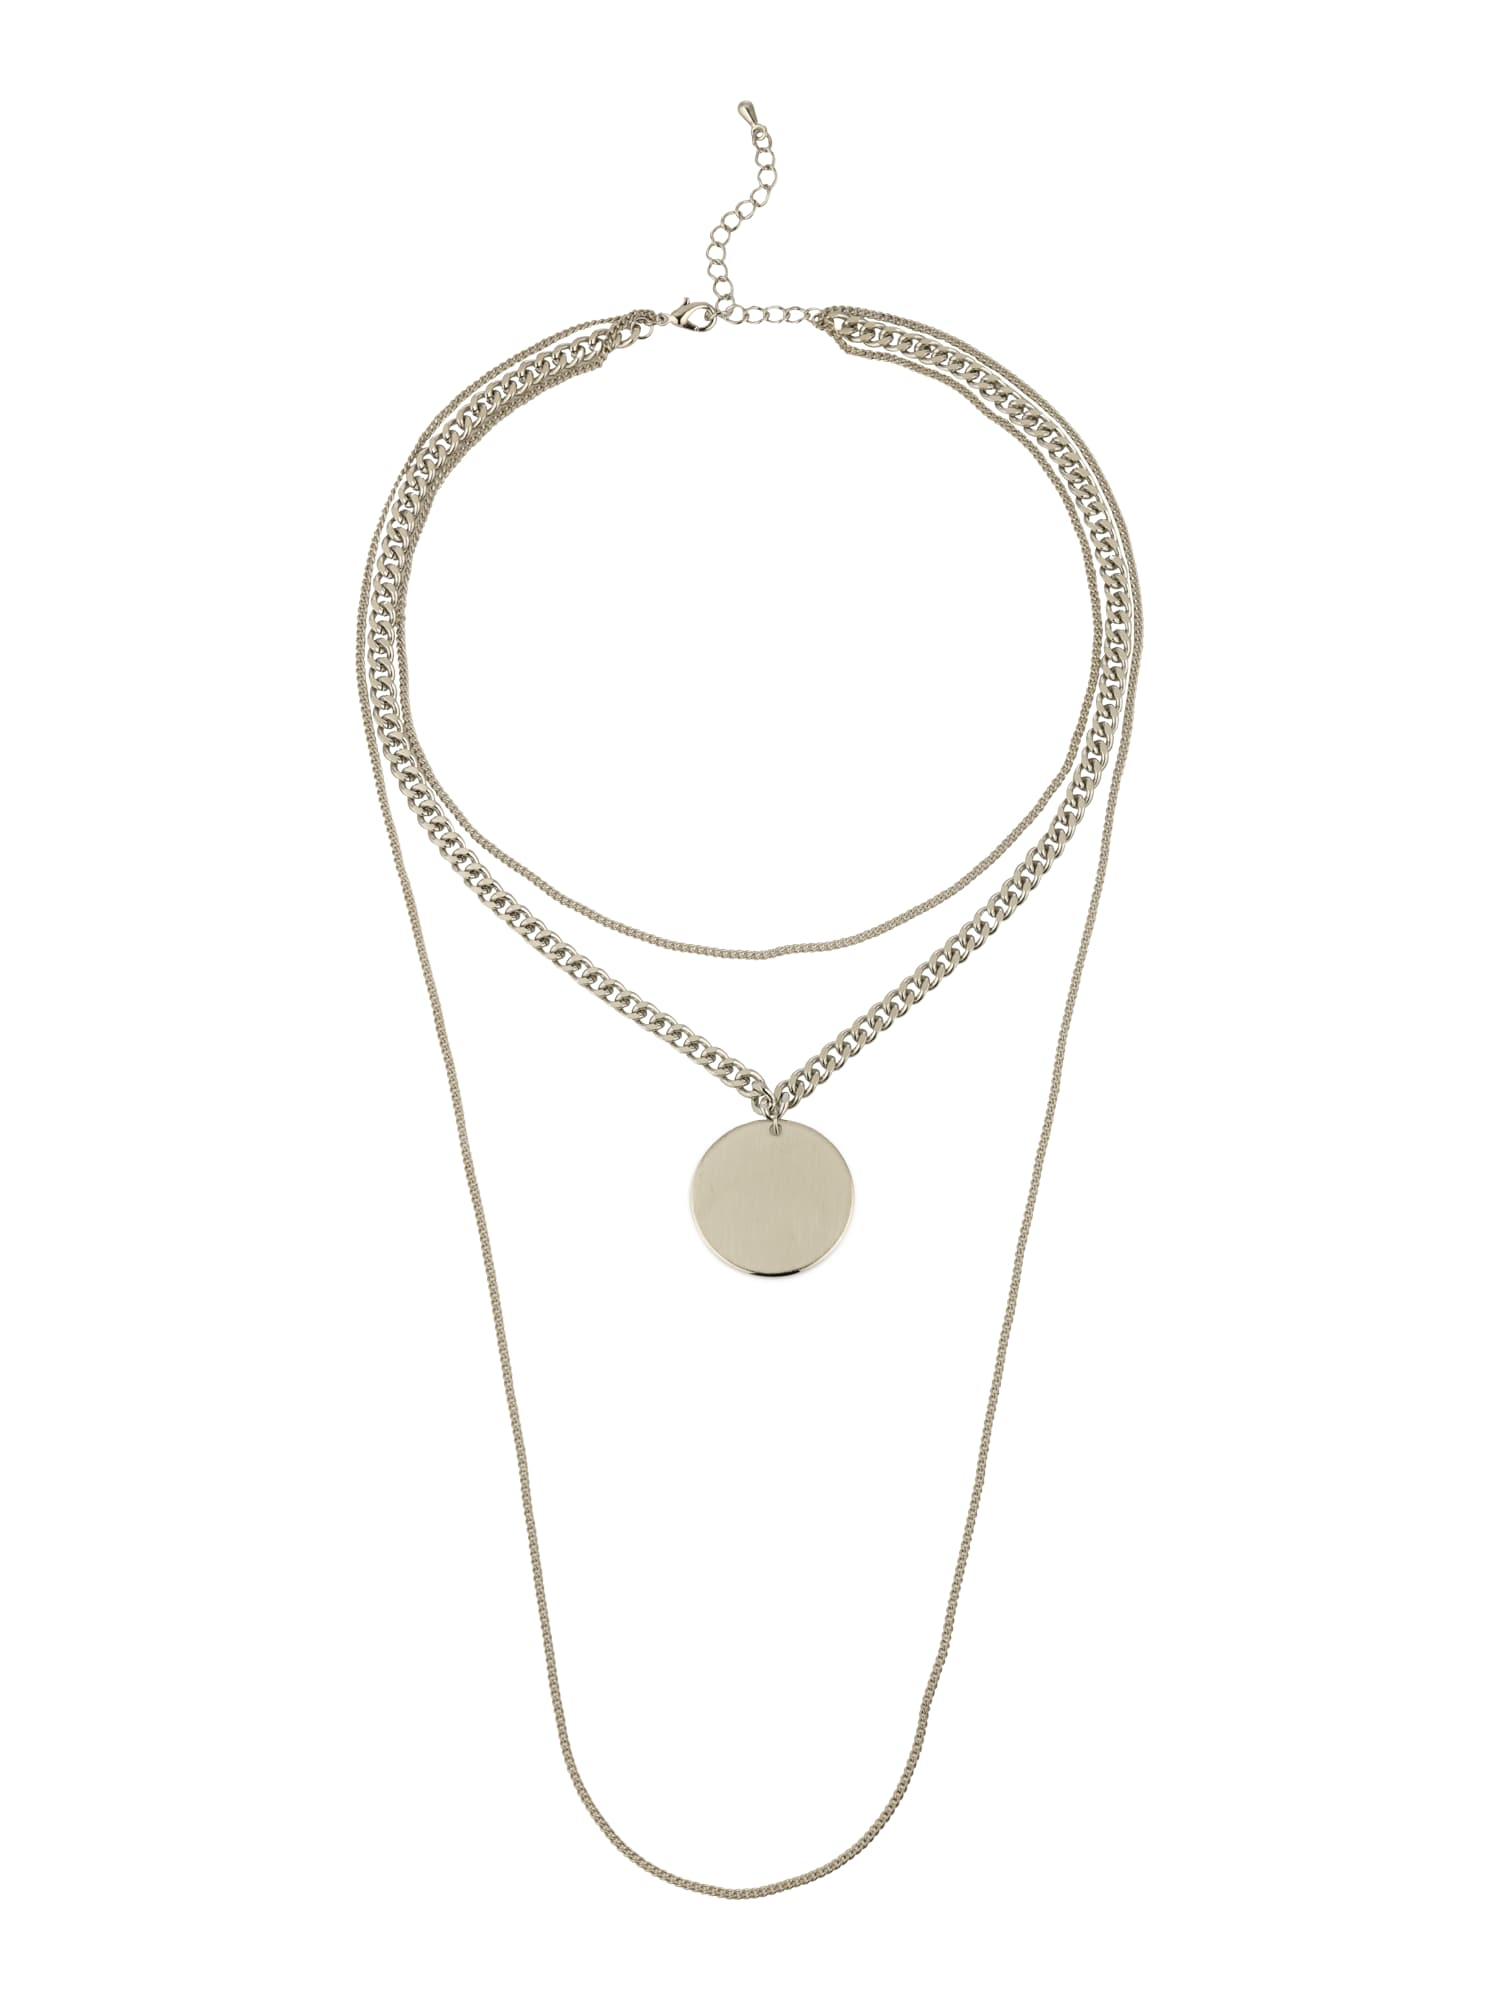 Blond ACCESSORIES, Dames Ketting 'Double chain', zilver